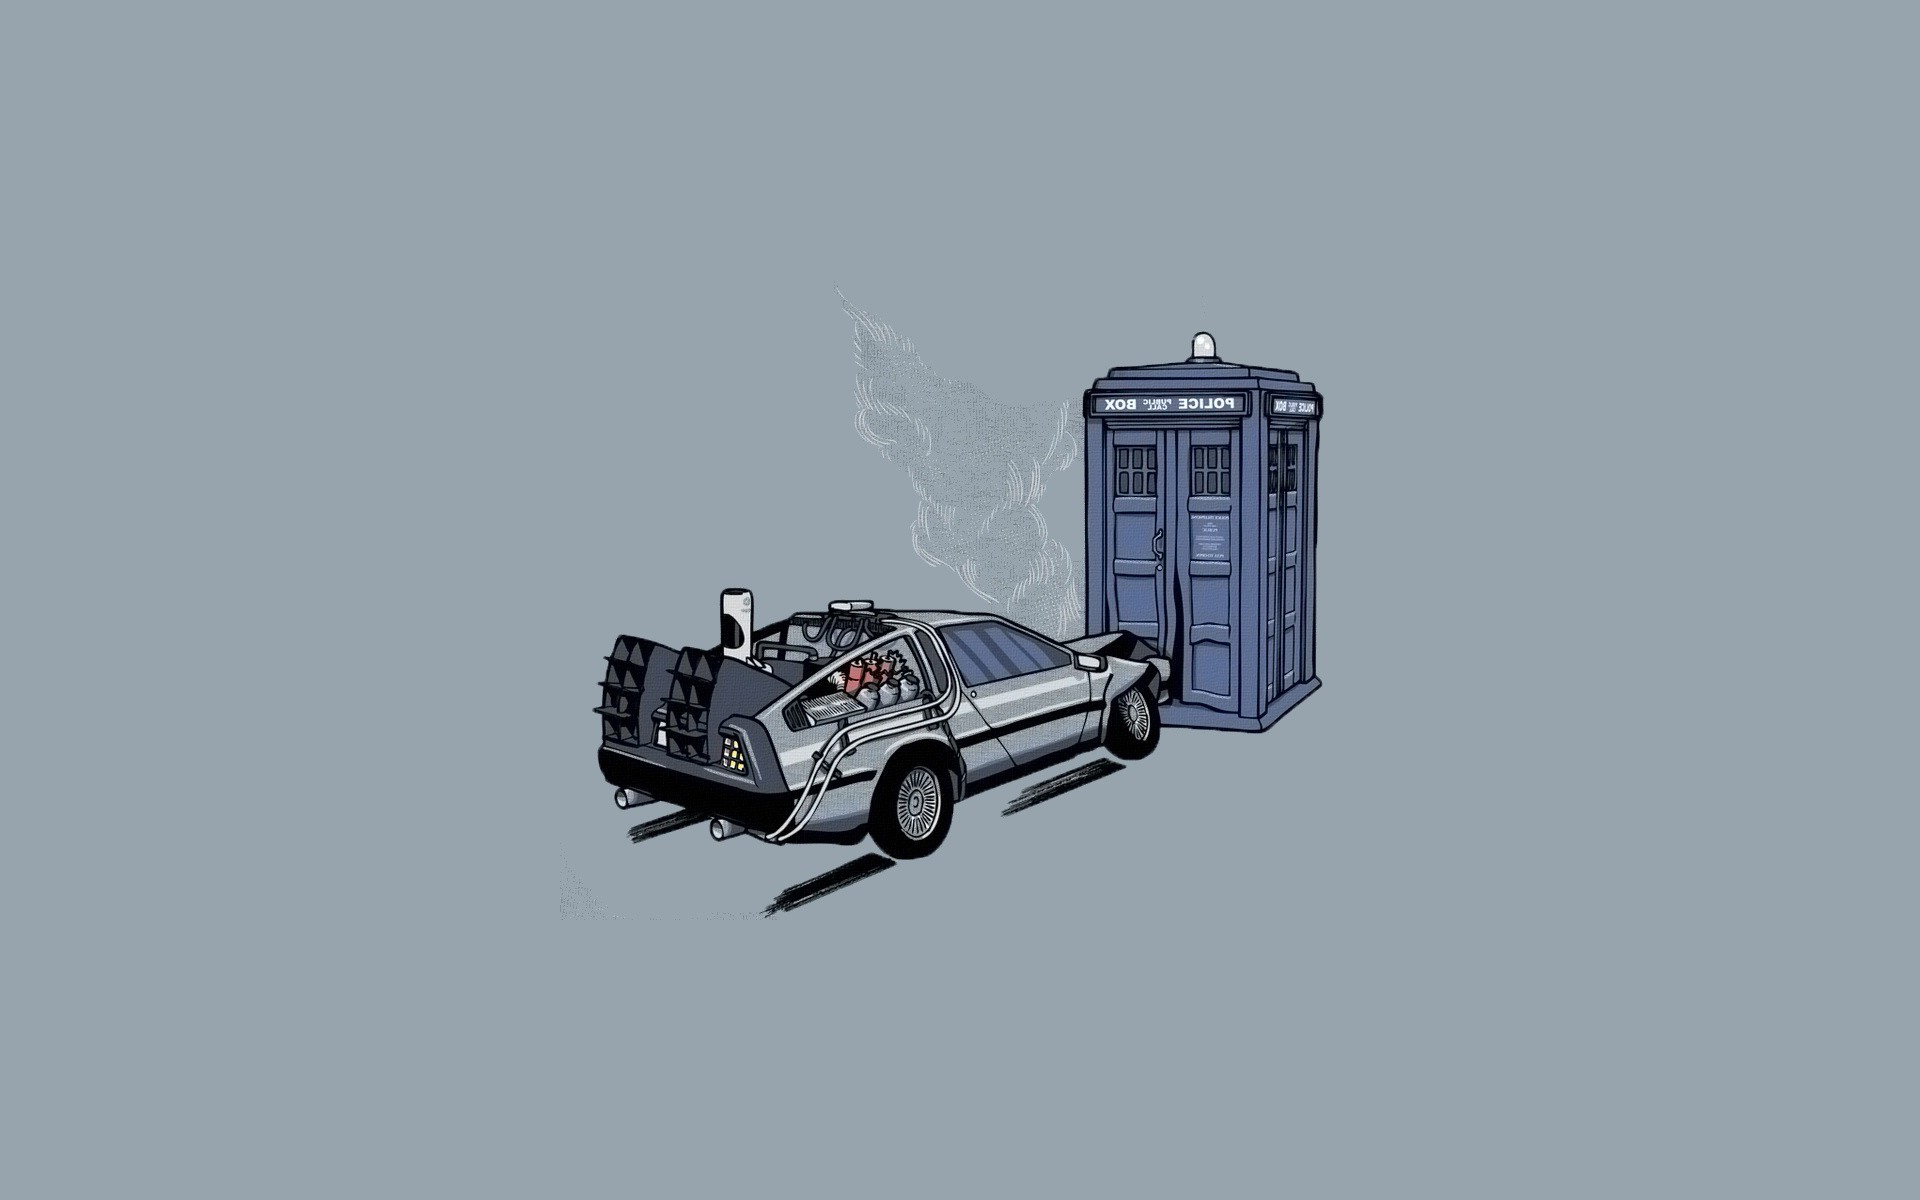 crash, Lightning, Storm, Vintage, TARDIS, DeLorean, Doctor Who, Back To The  Future, Simple Background, Minimalism, Crossover Wallpapers HD / Desktop  and …